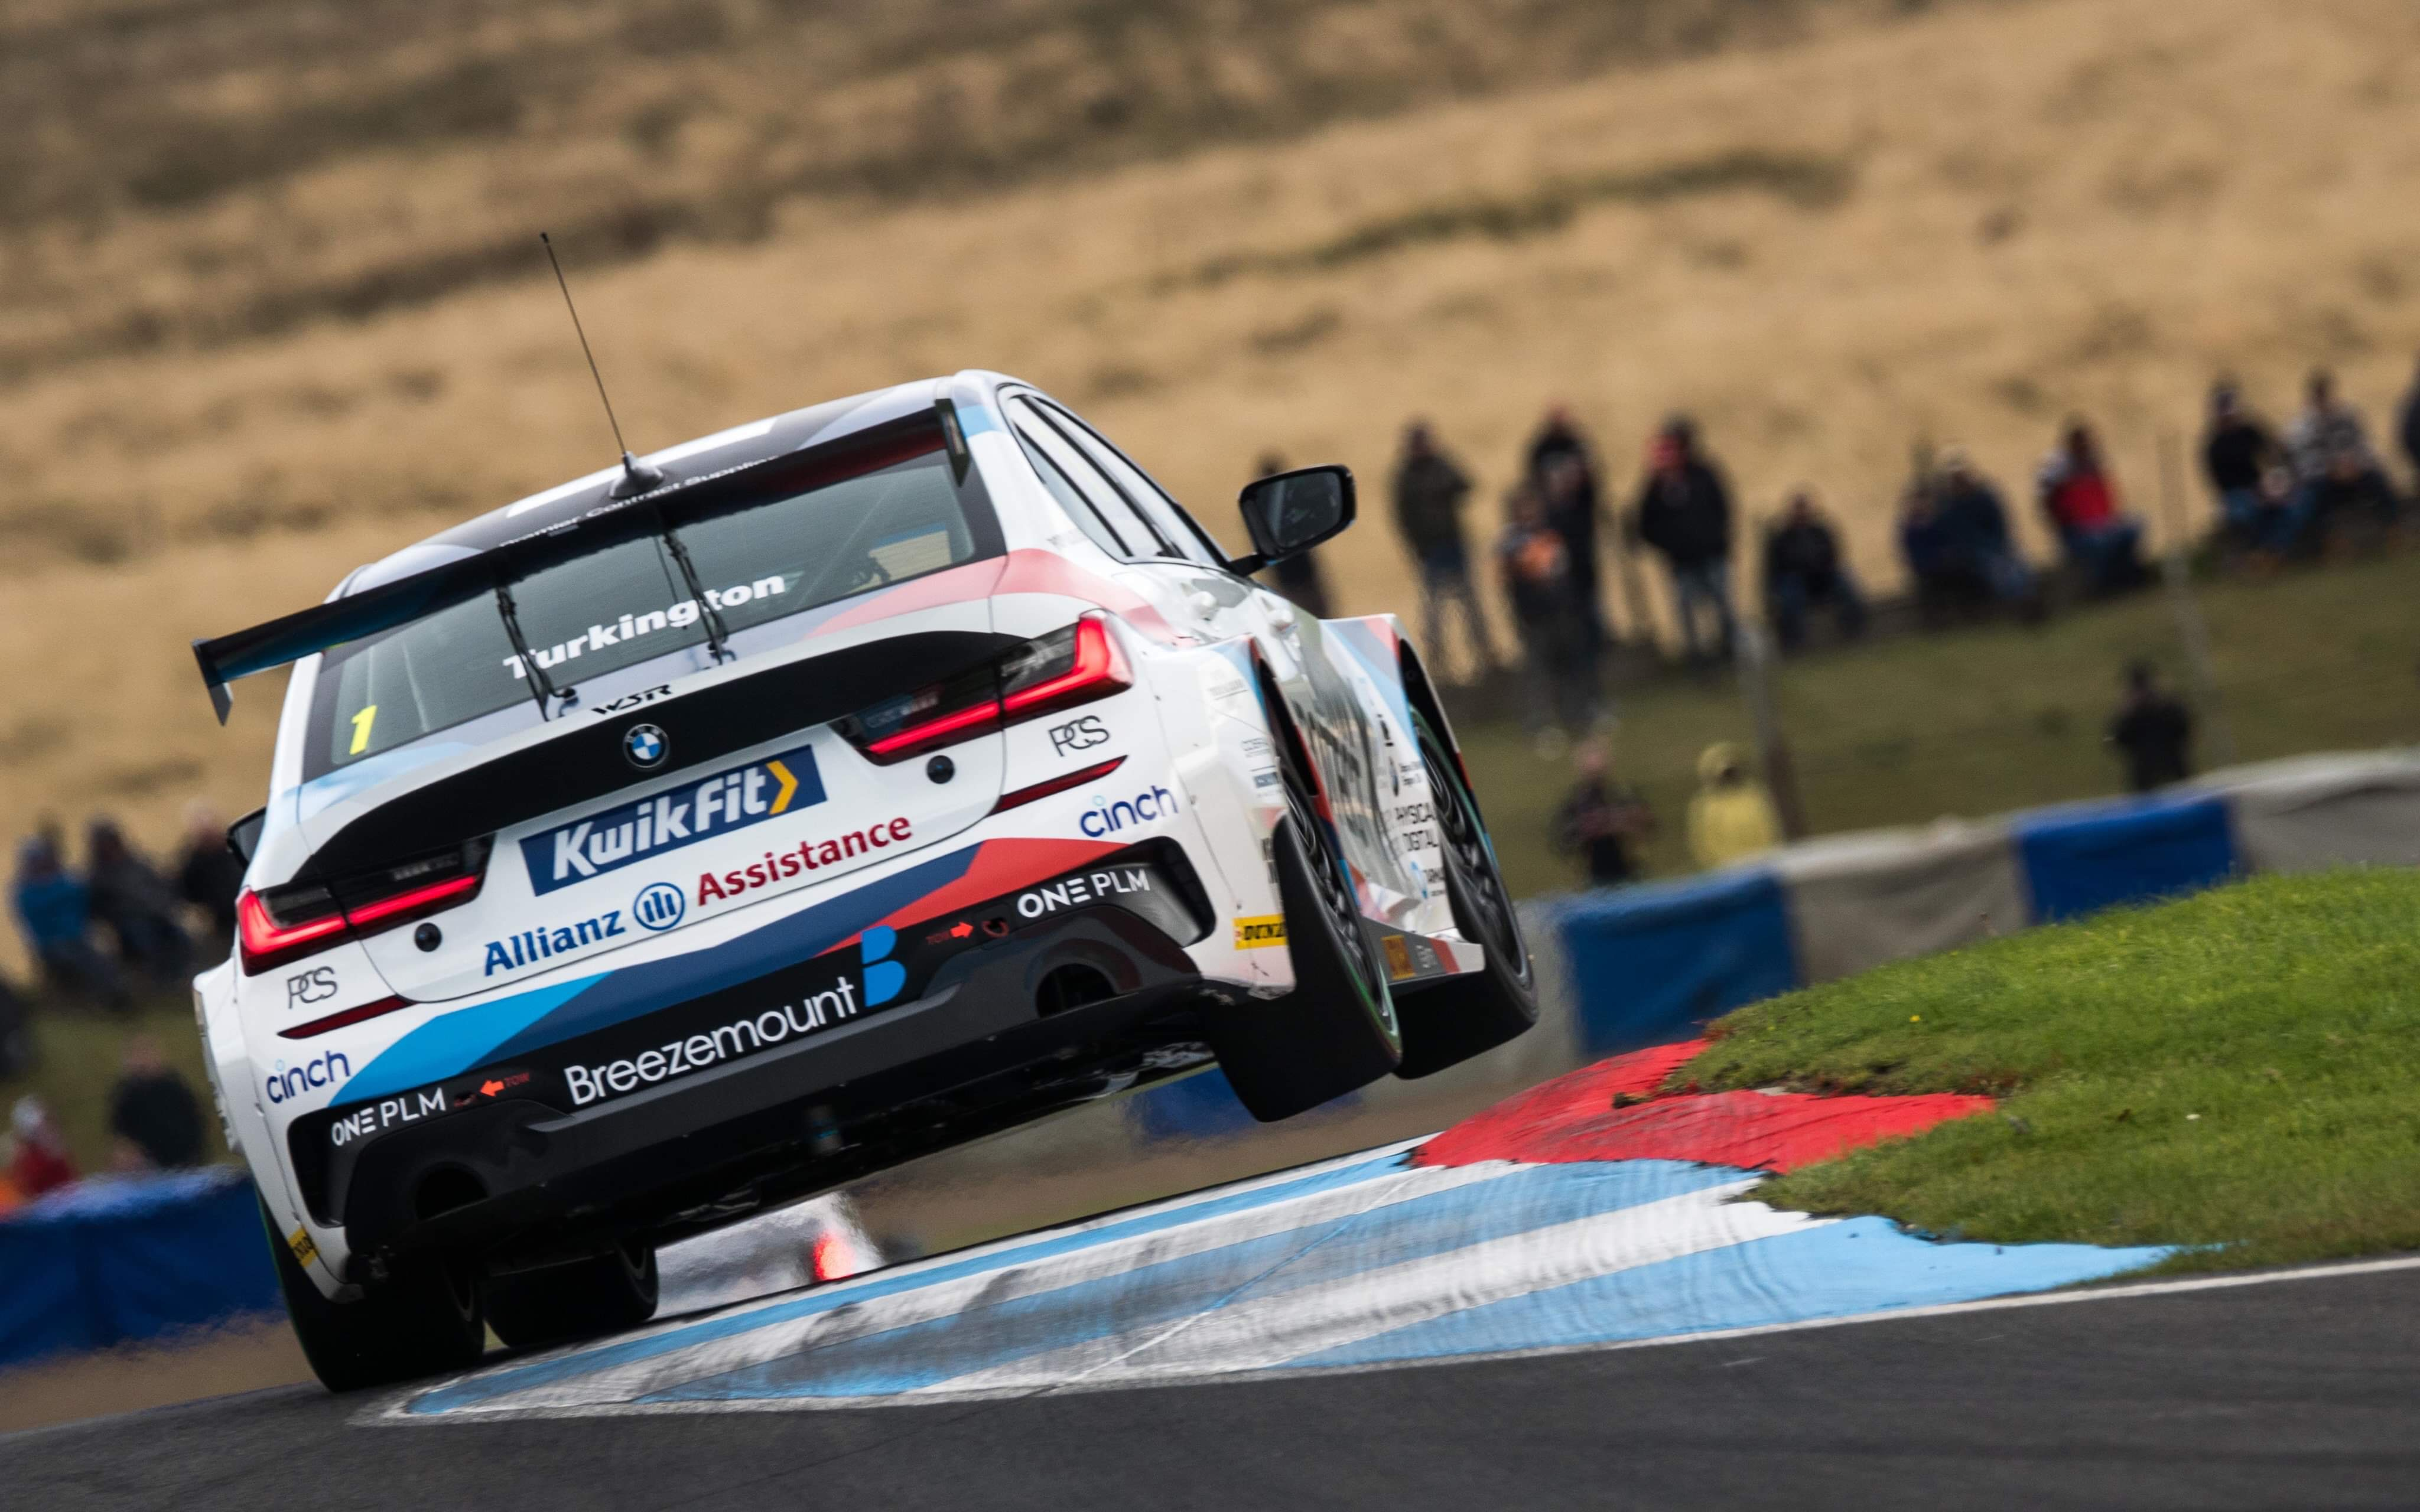 KNOCKHILL QUALIFYING REPORT